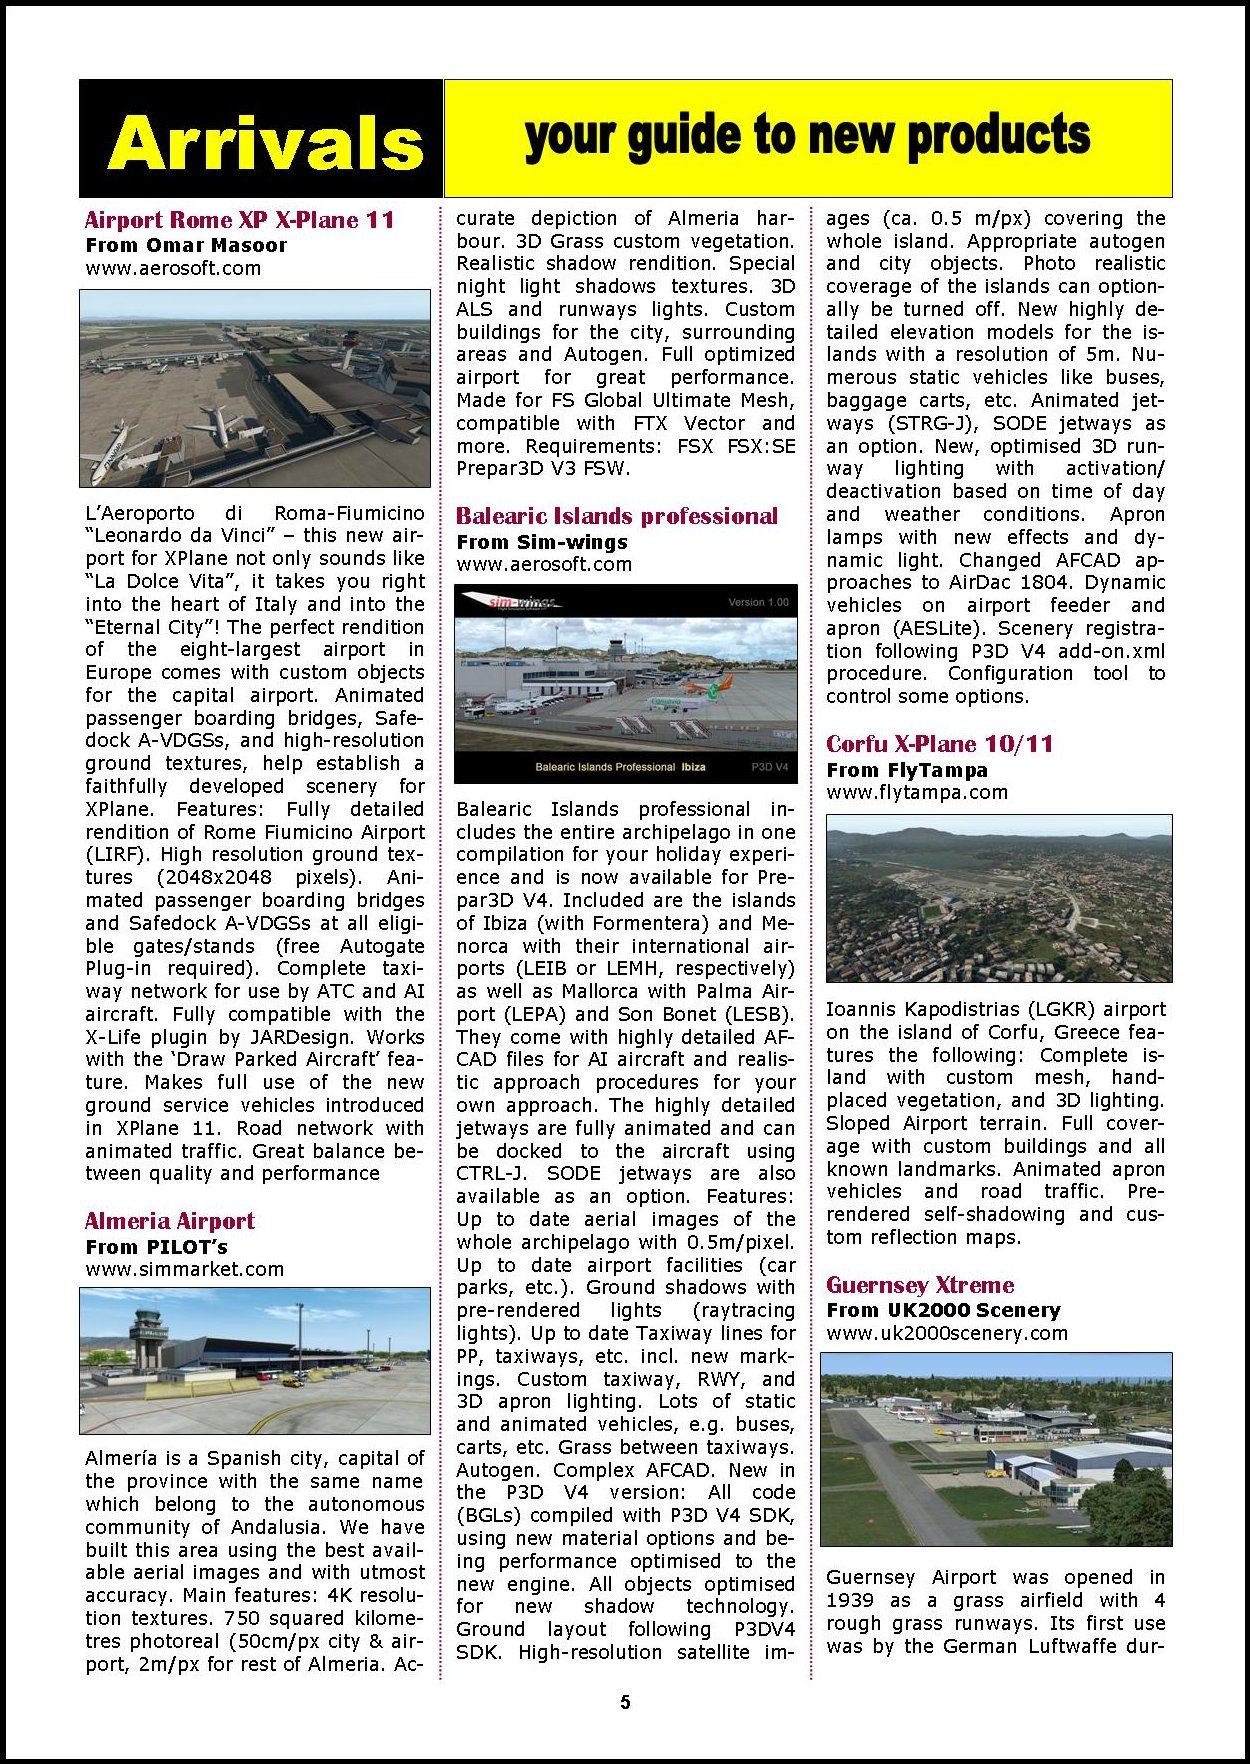 PC PILOTS IRELAND - PC FLIGHT MAGAZINE - JUNE 2018 ISSUE